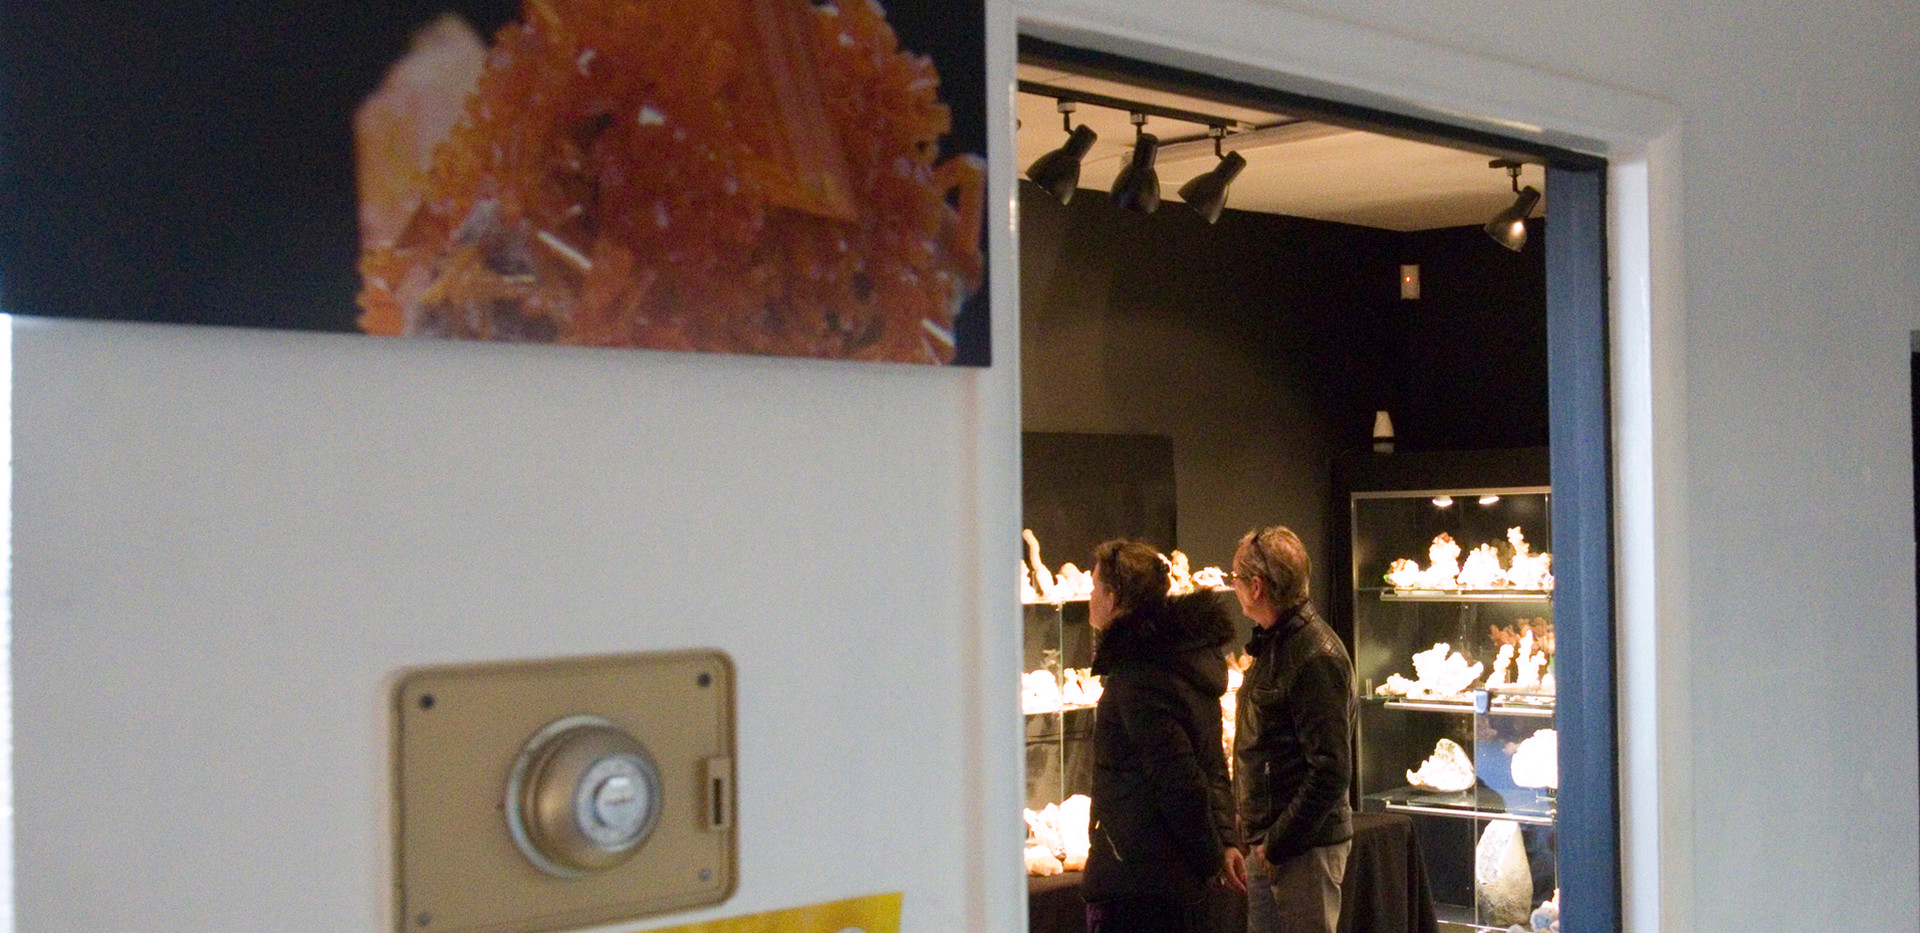 'Reflection' by Studio Mineralia installed at Superb Minerals, Tucson, Arizona